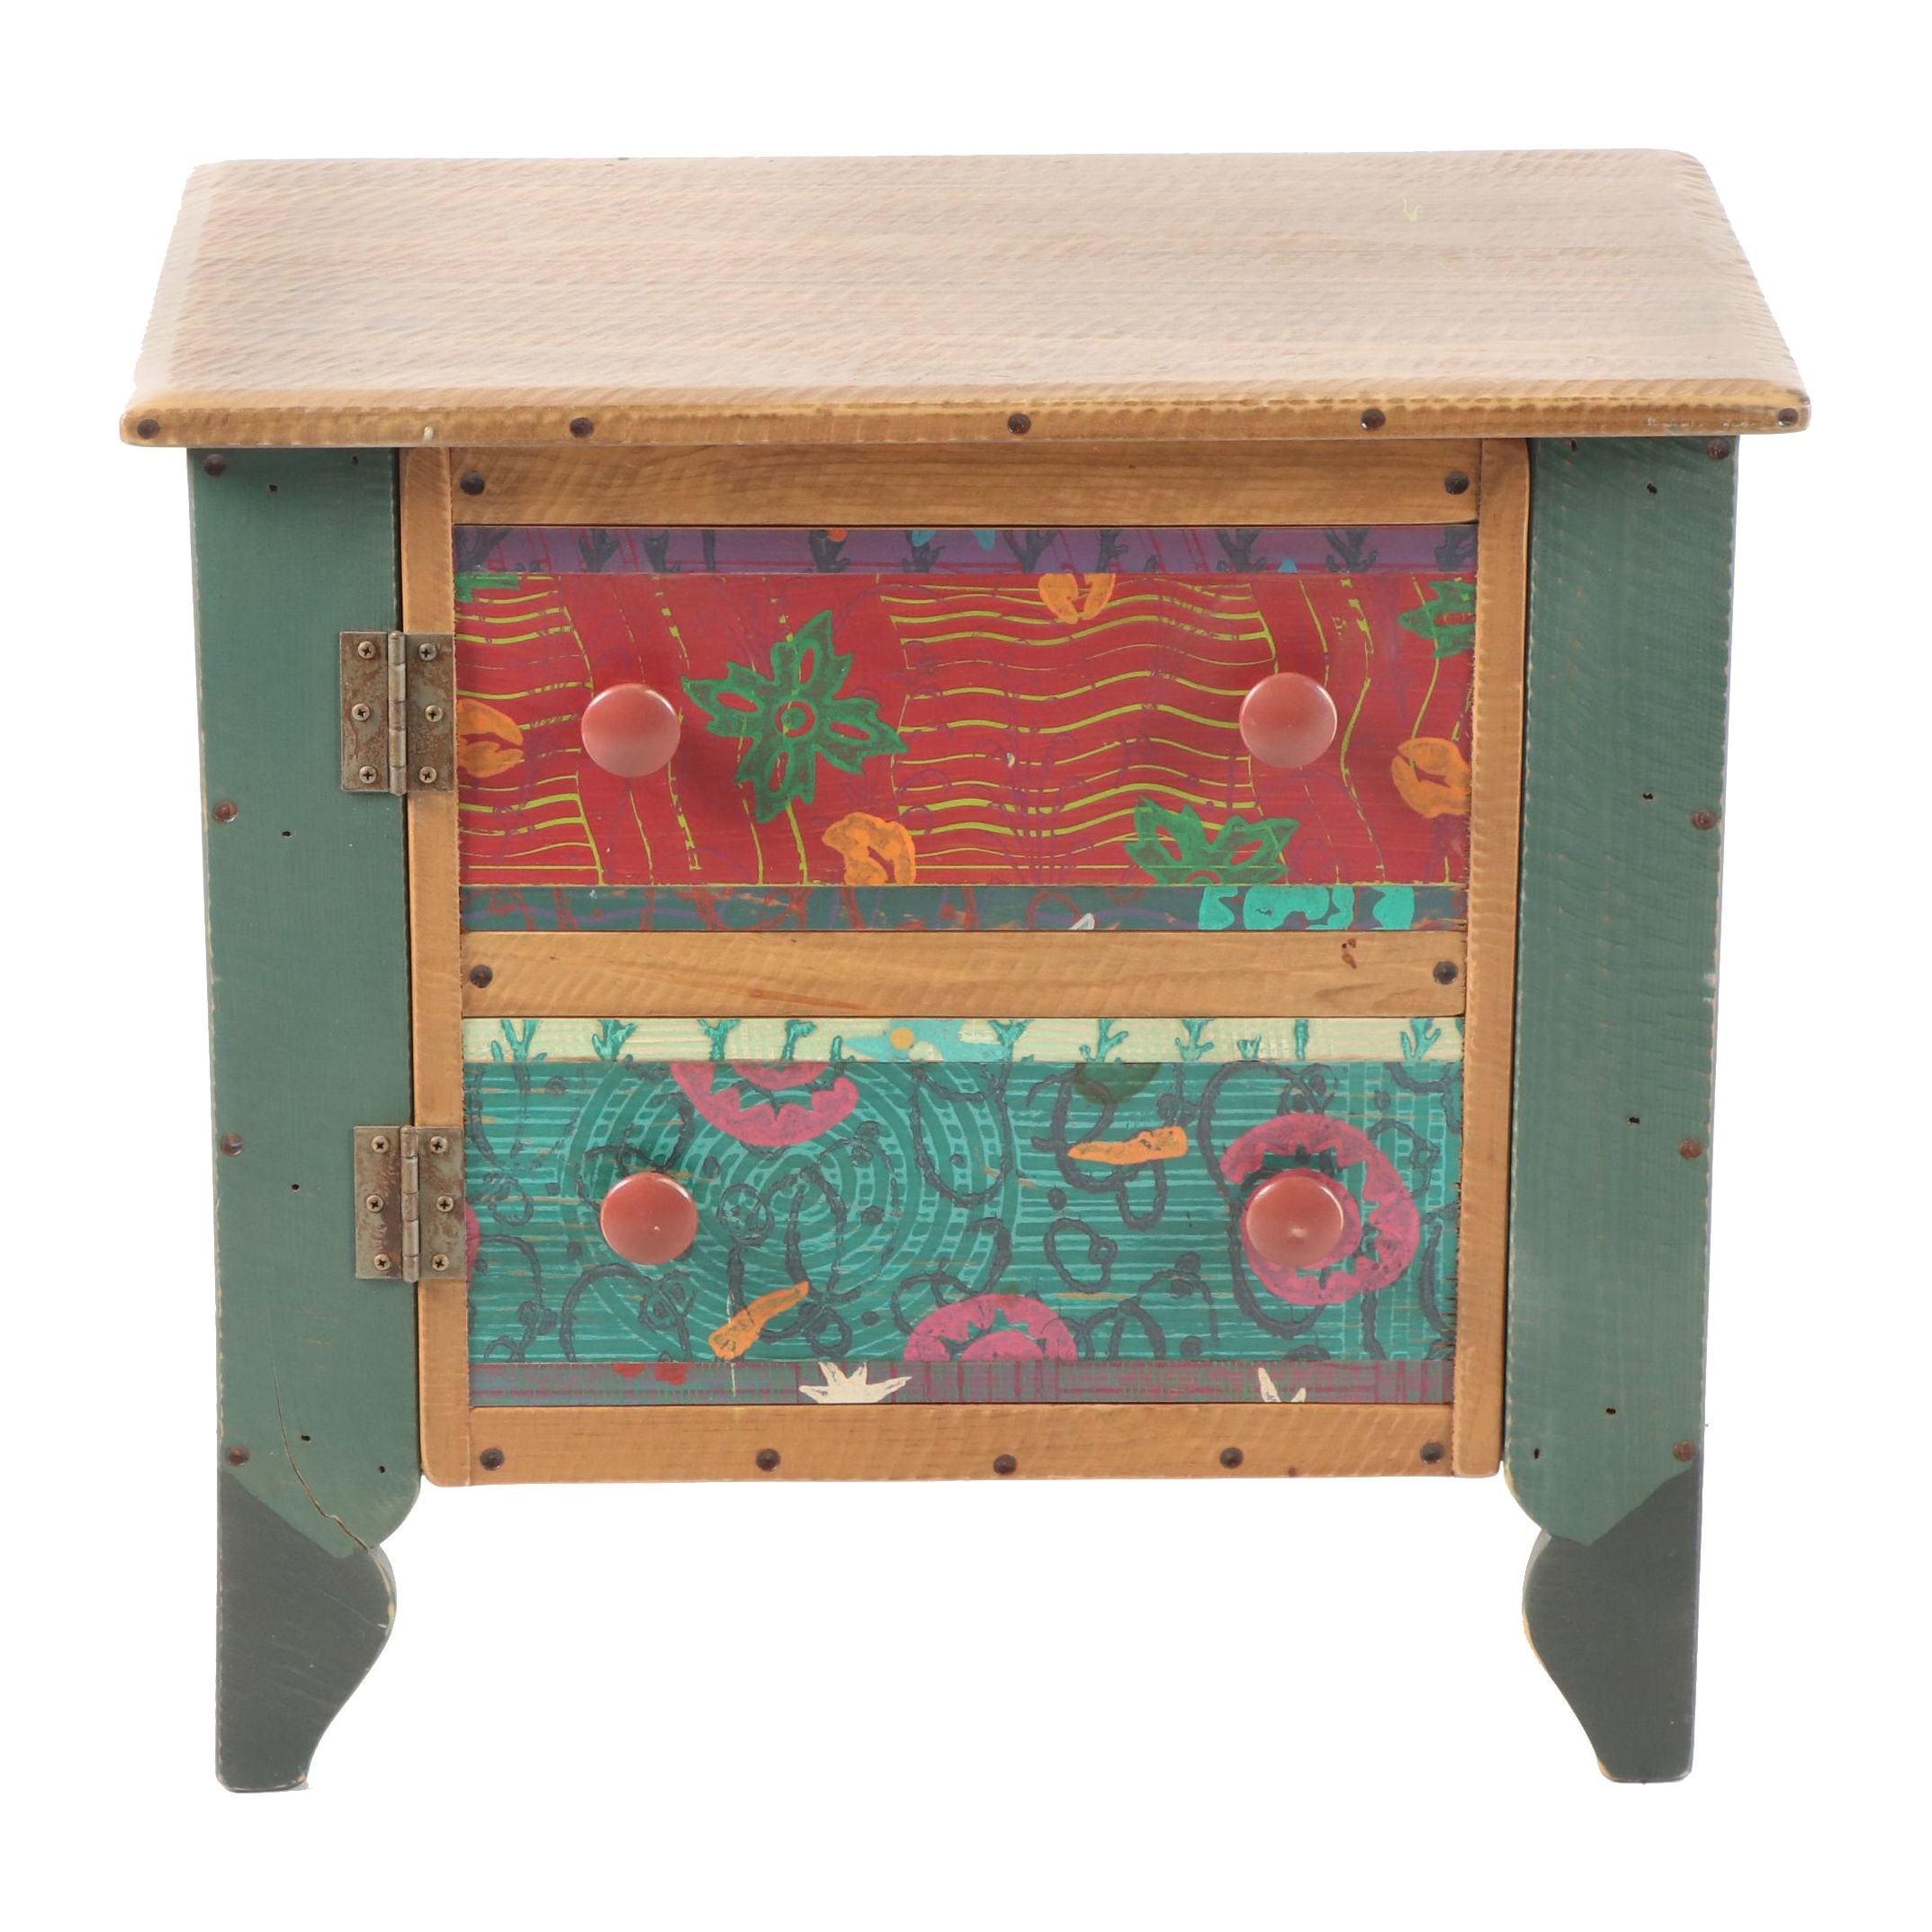 Hand-Painted Wood Nightstand by Shoestring Creations, 21st Century